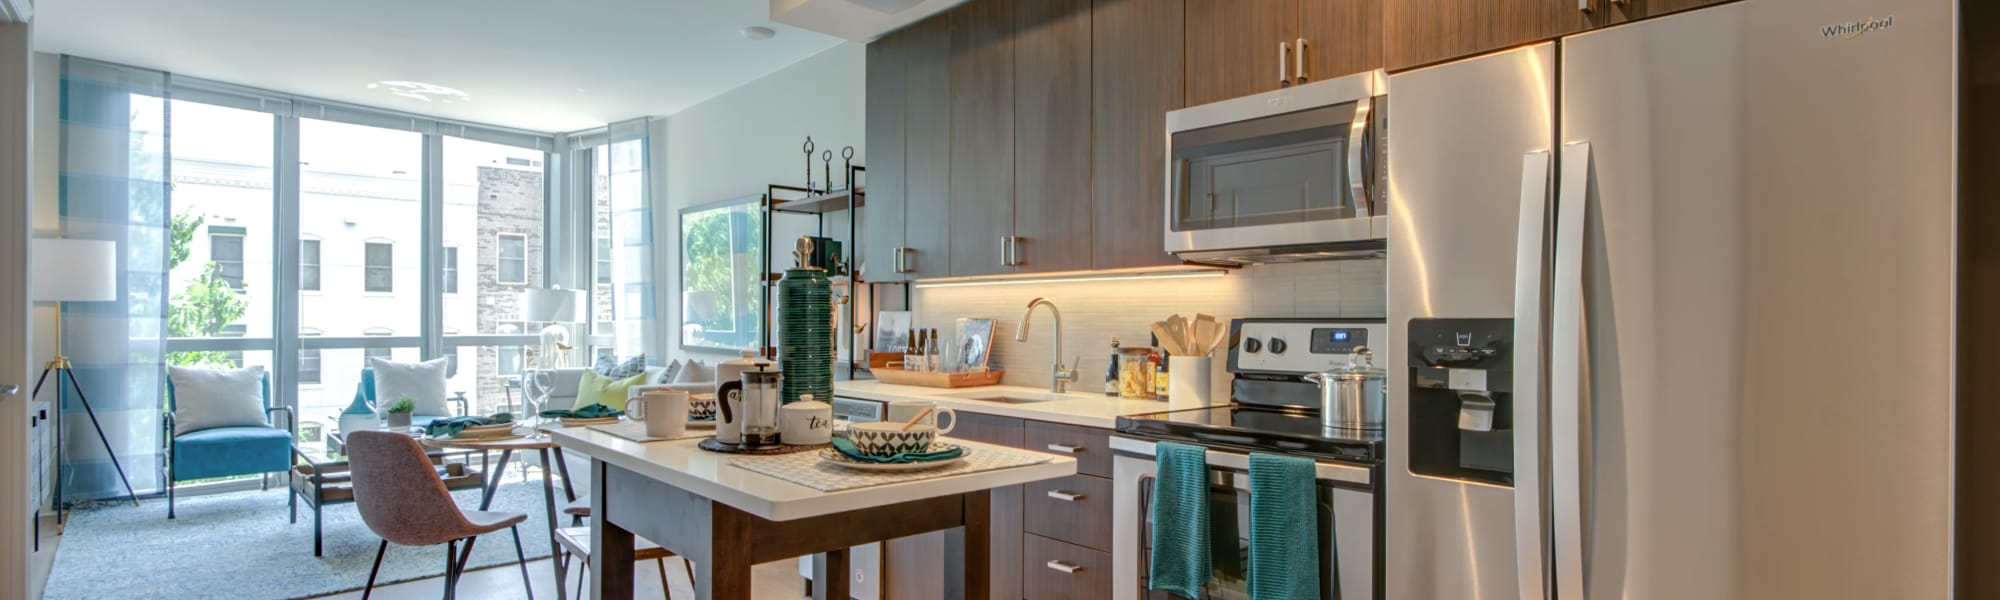 Schedule a tour at Harlow in Washington, District of Columbia